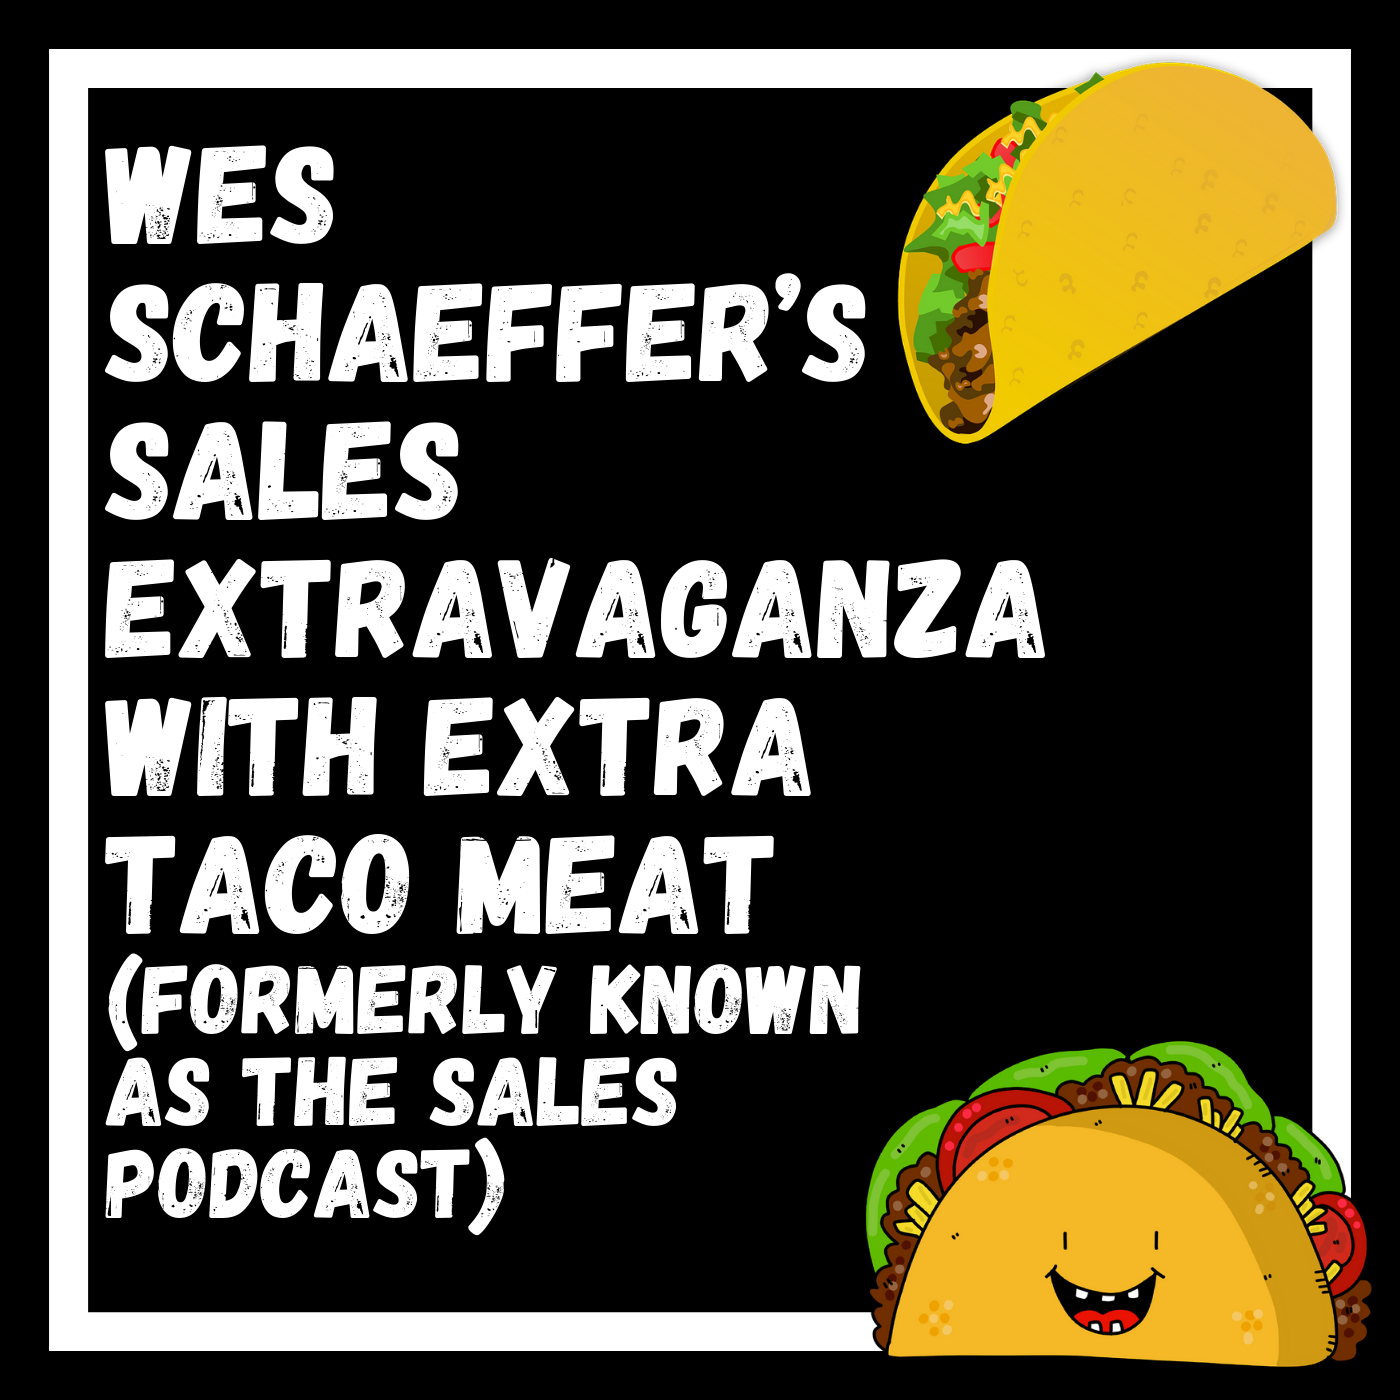 The Sales Podcast show art